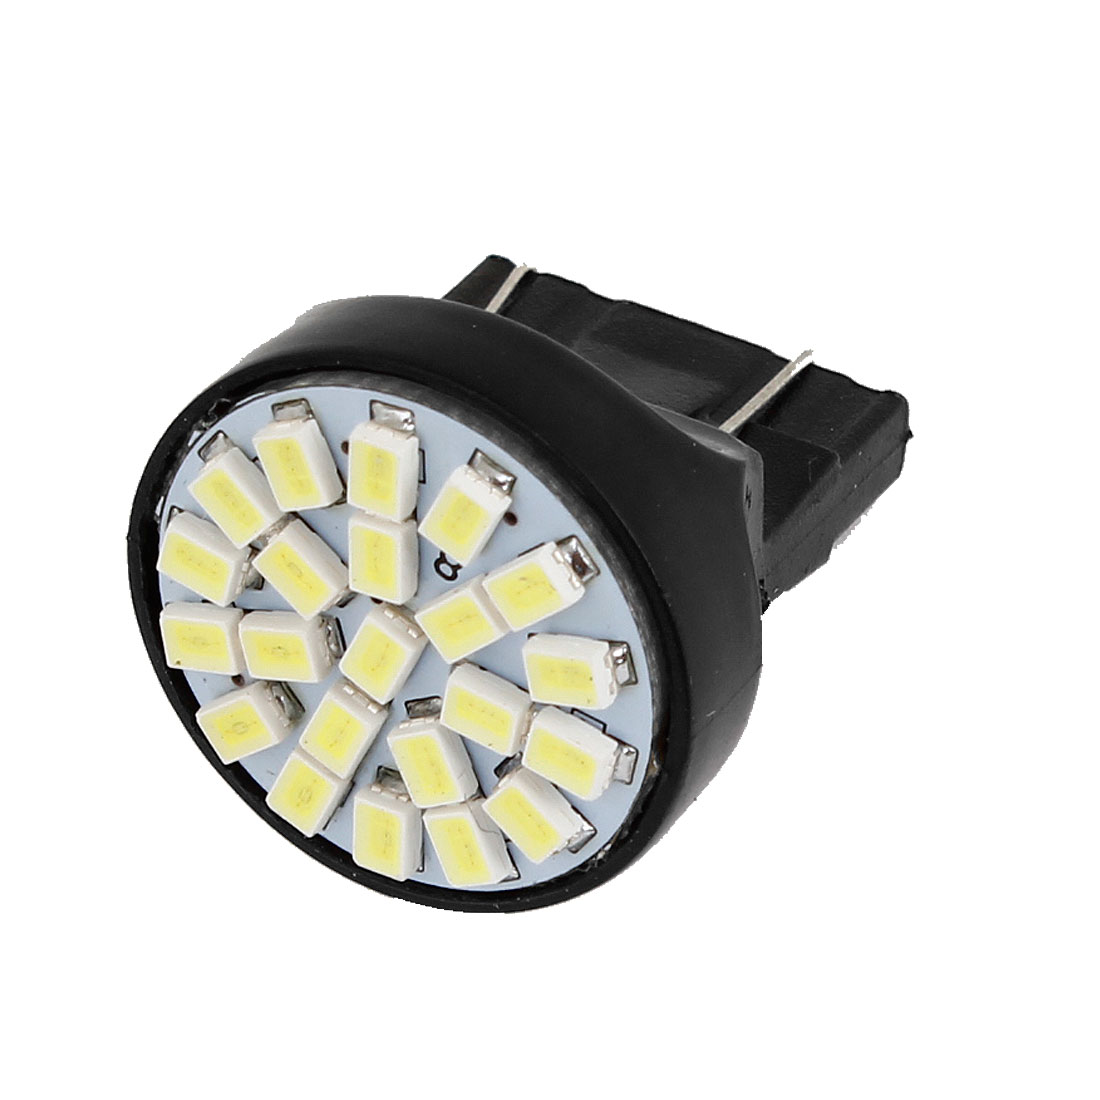 White 1206 SMD 22 LED Turn Signal Brake Light Lamp Bulb T20 for Auto